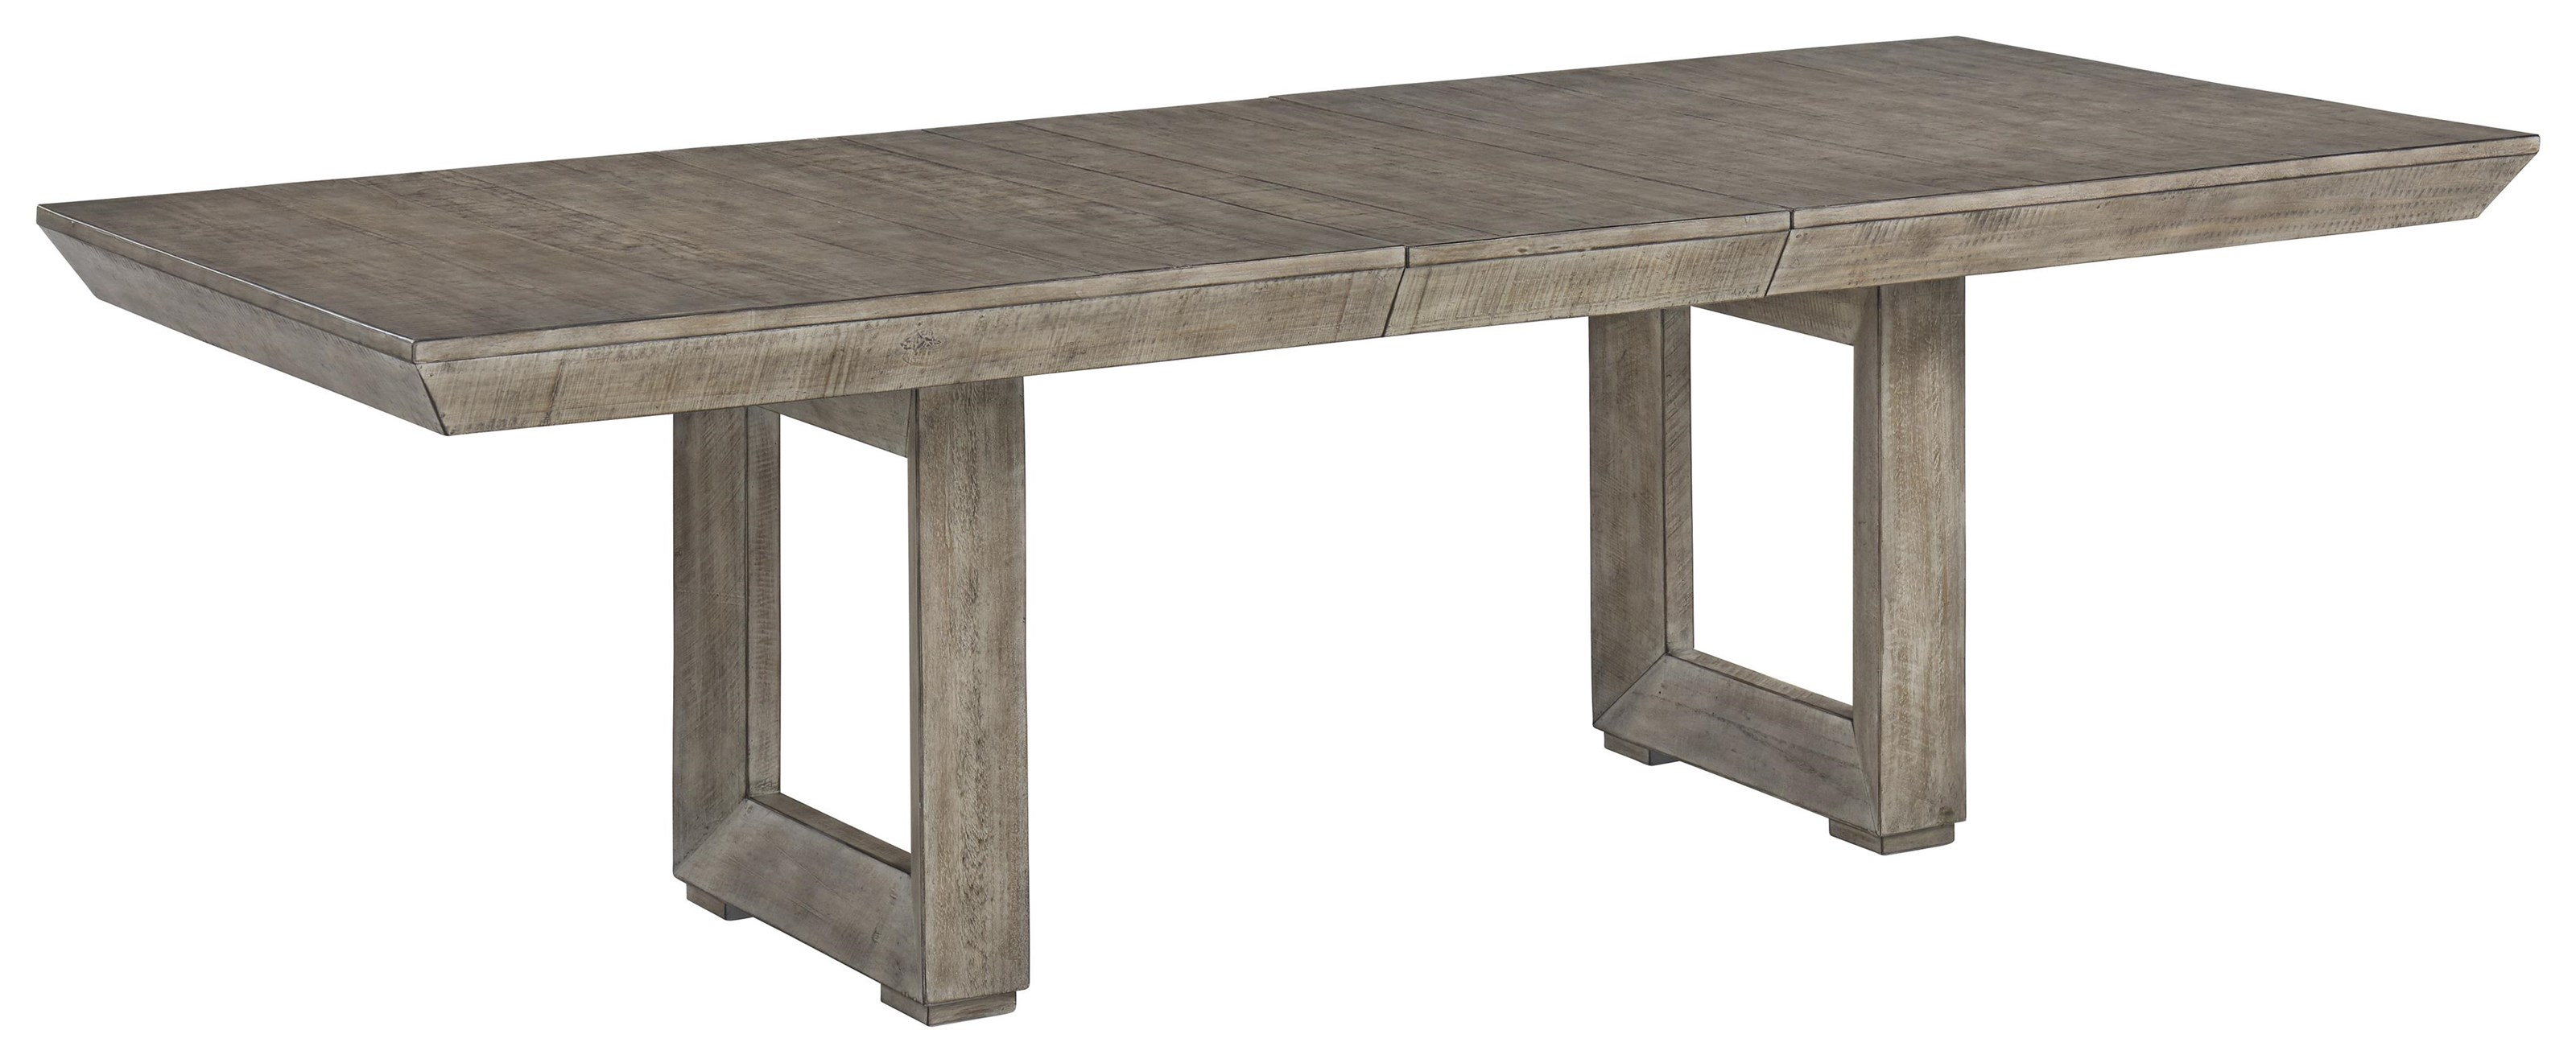 Langford Dining Table by Millennium at Sam Levitz Outlet